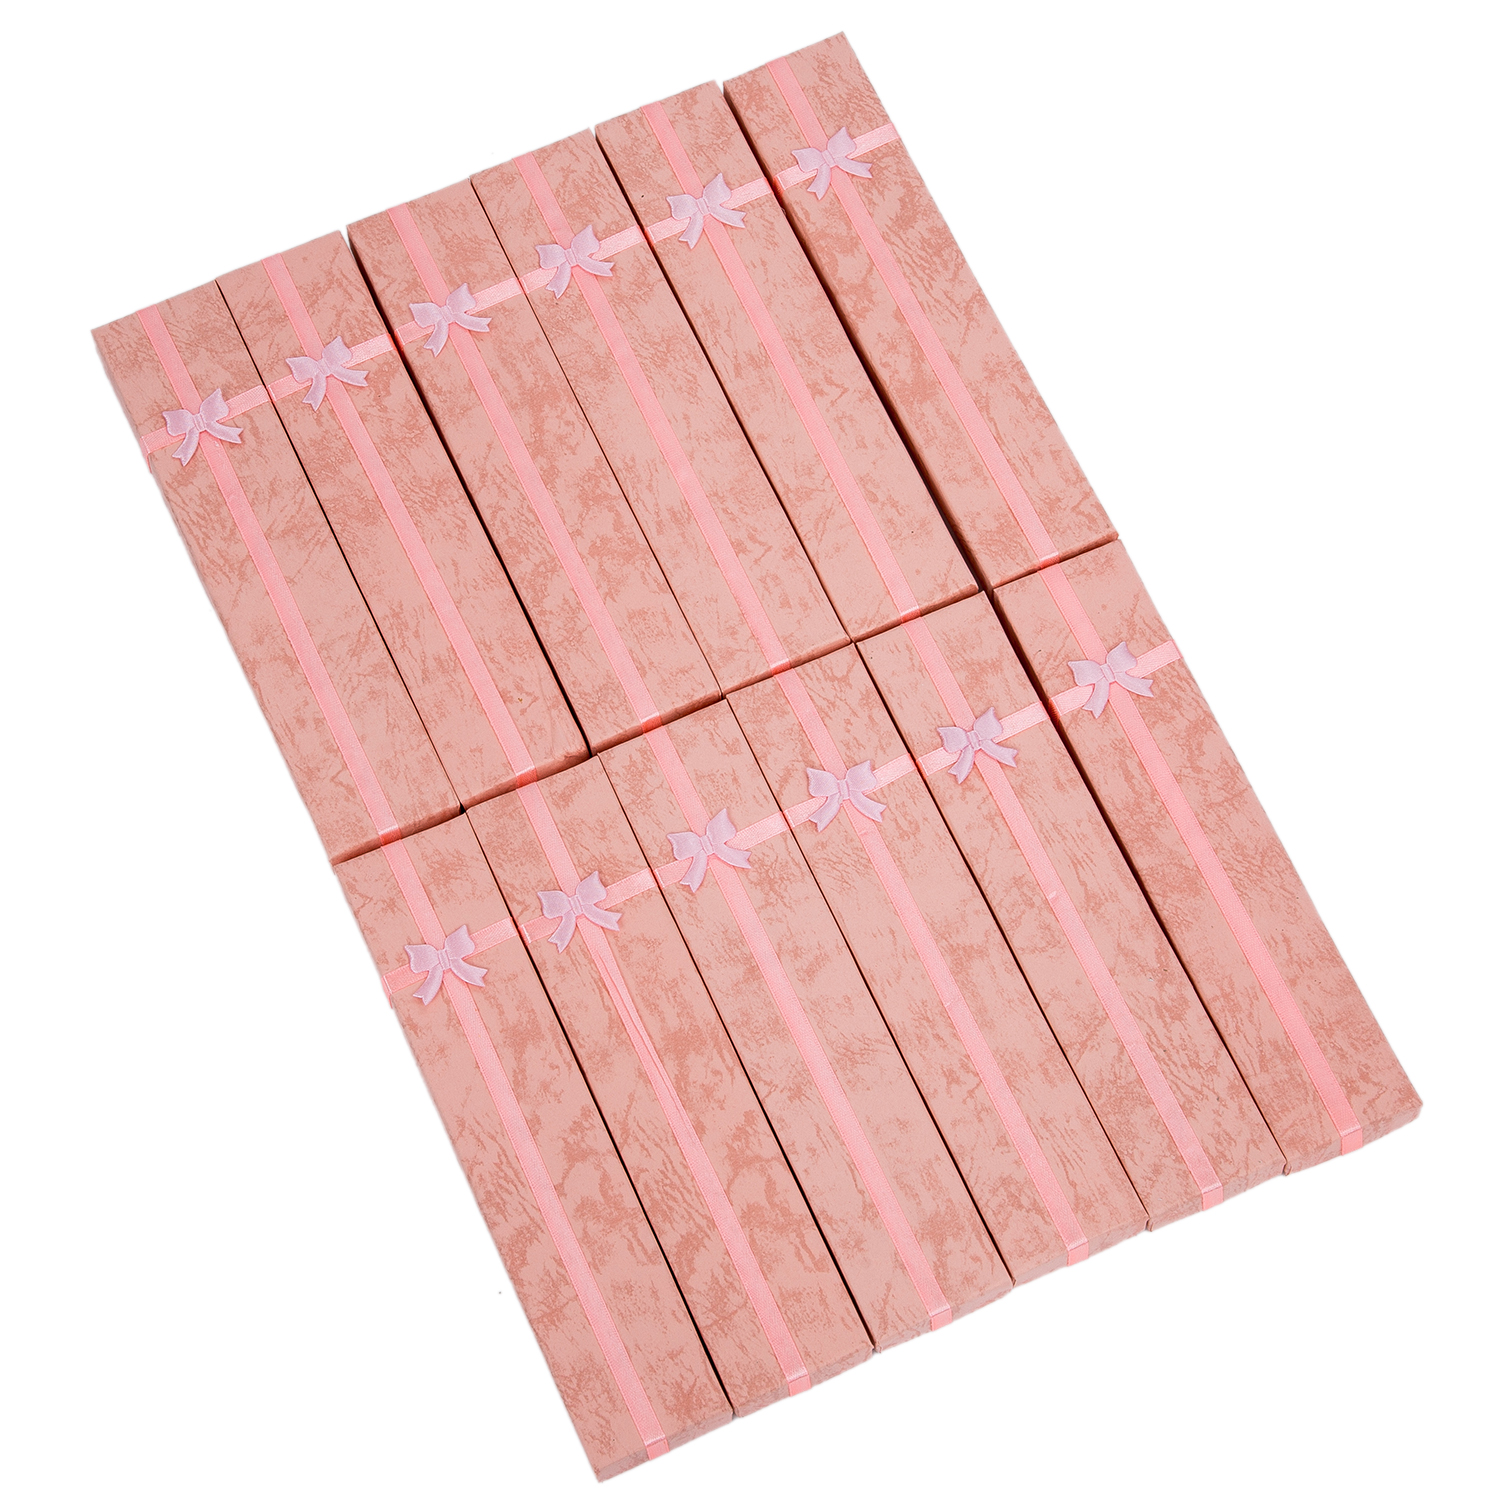 SAF-12 X Pink Long Luxury Card Jewelry Gift Boxes Watch Display Box Pendant Necklace